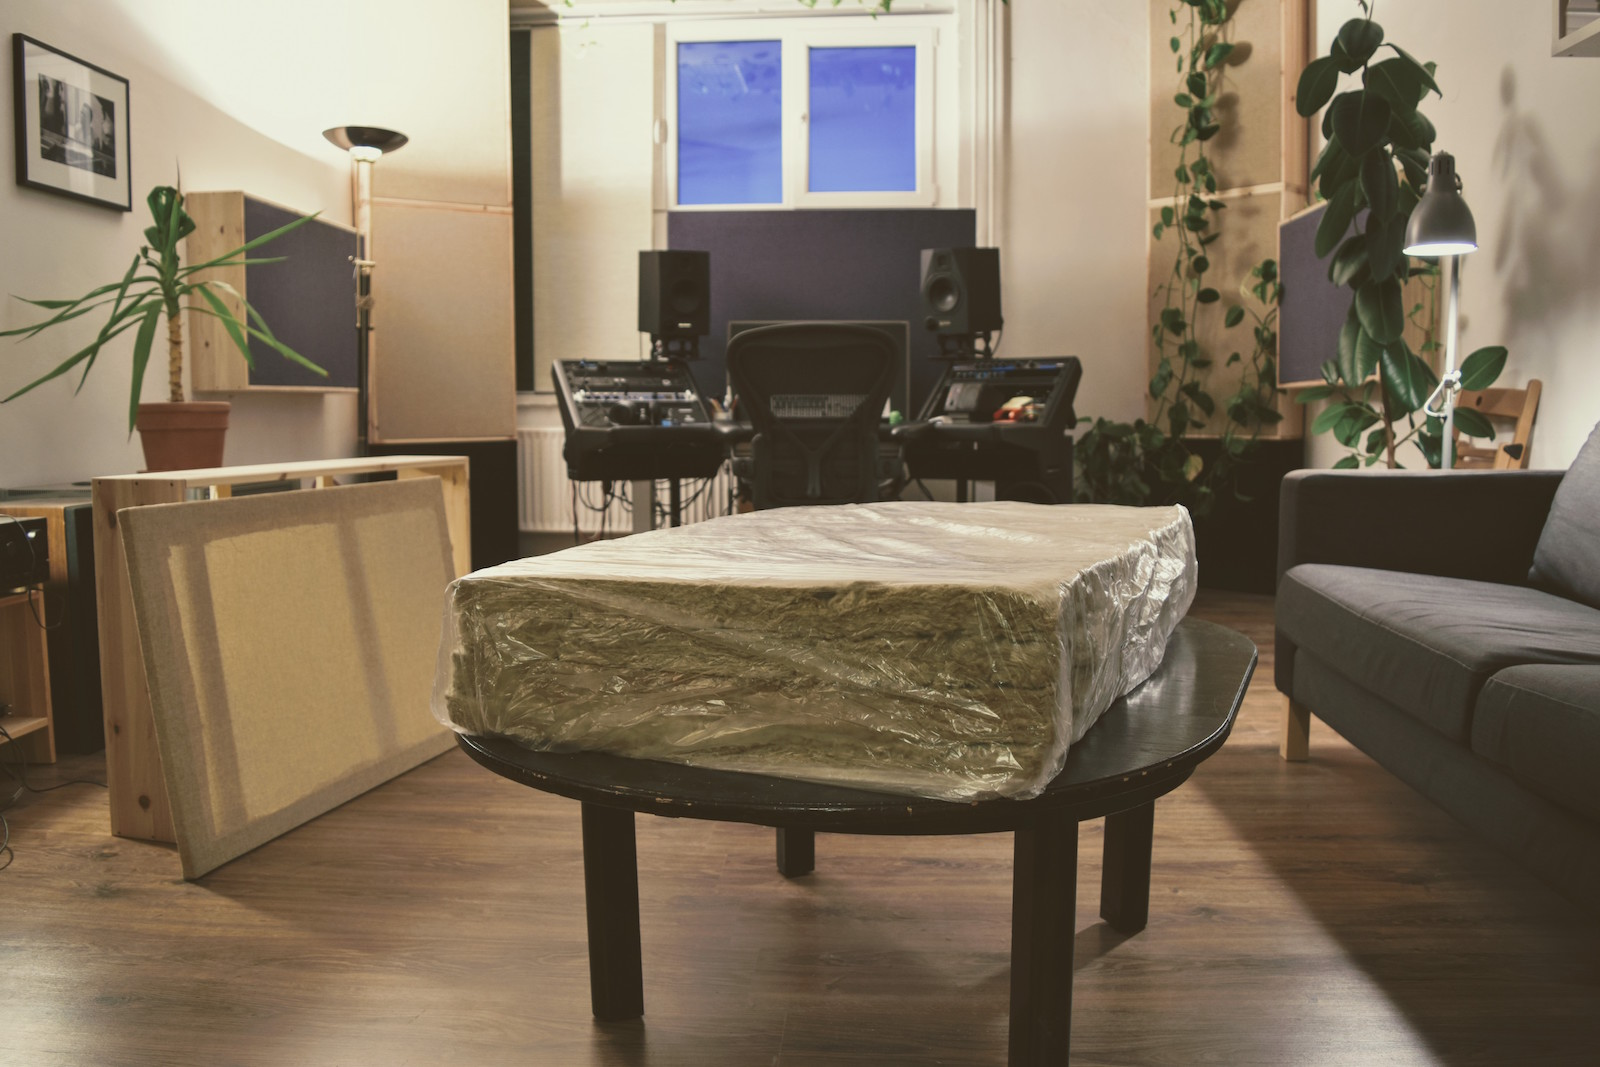 The Best (And Only) Insulation Material You Need For DIY Acoustic Absorbers